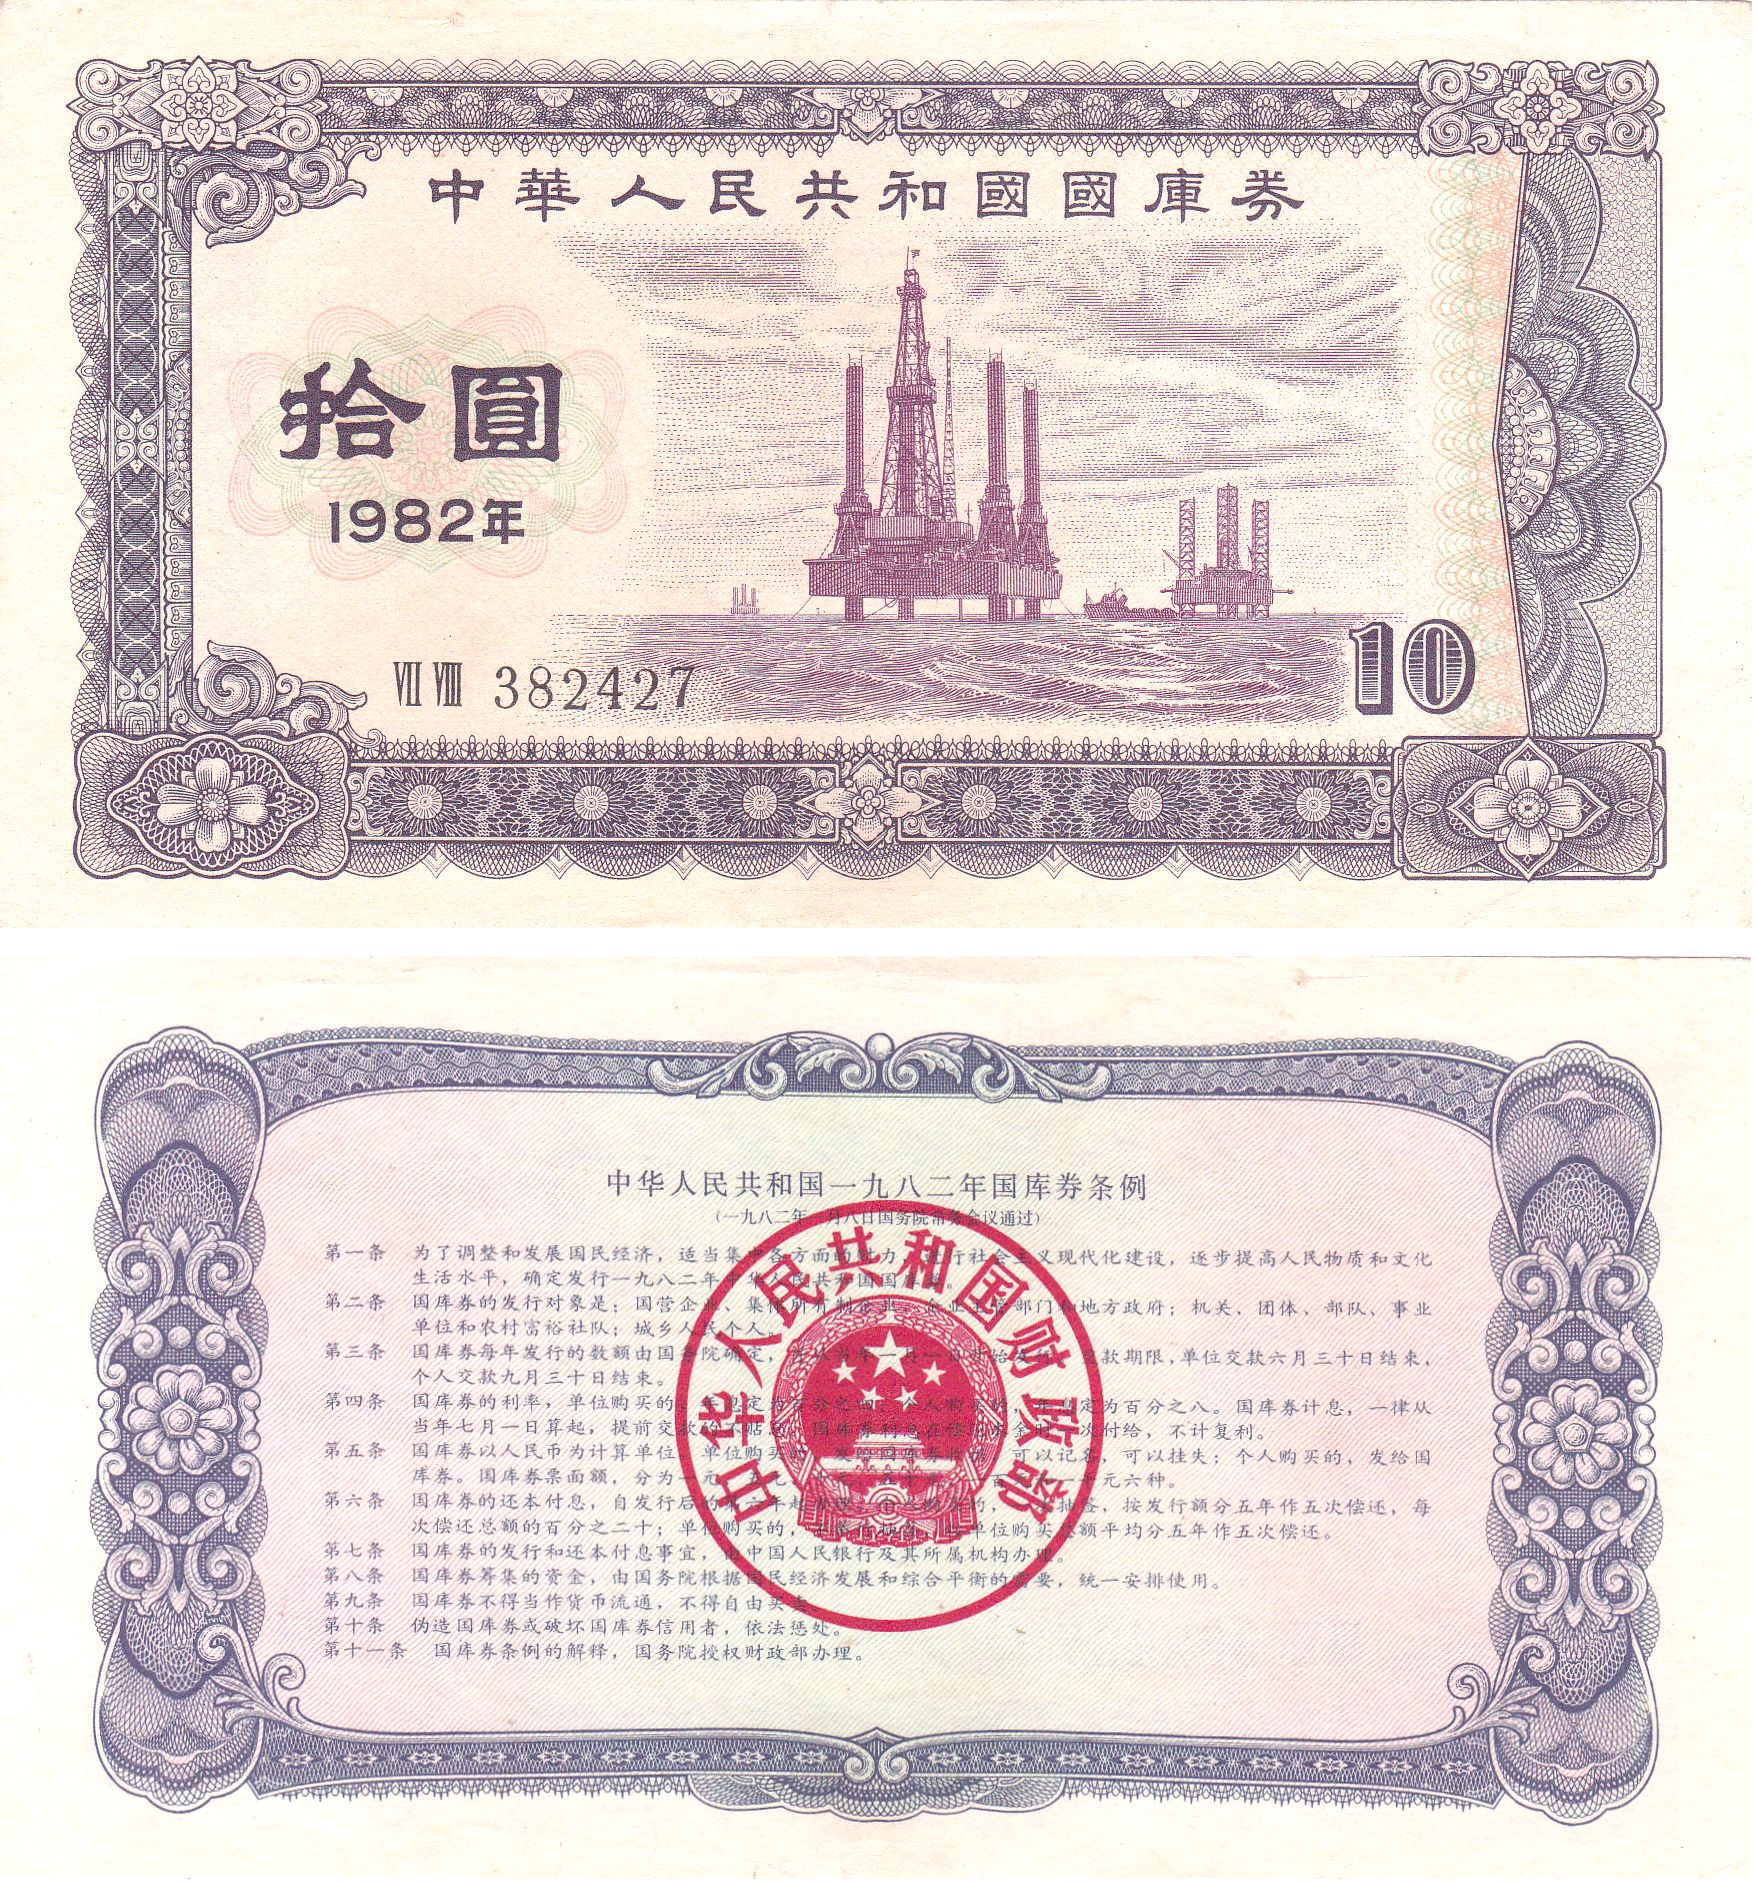 B7008, Treasury Bond of P.R.China, Ten Yuan (10 Dollars Loan) 1982